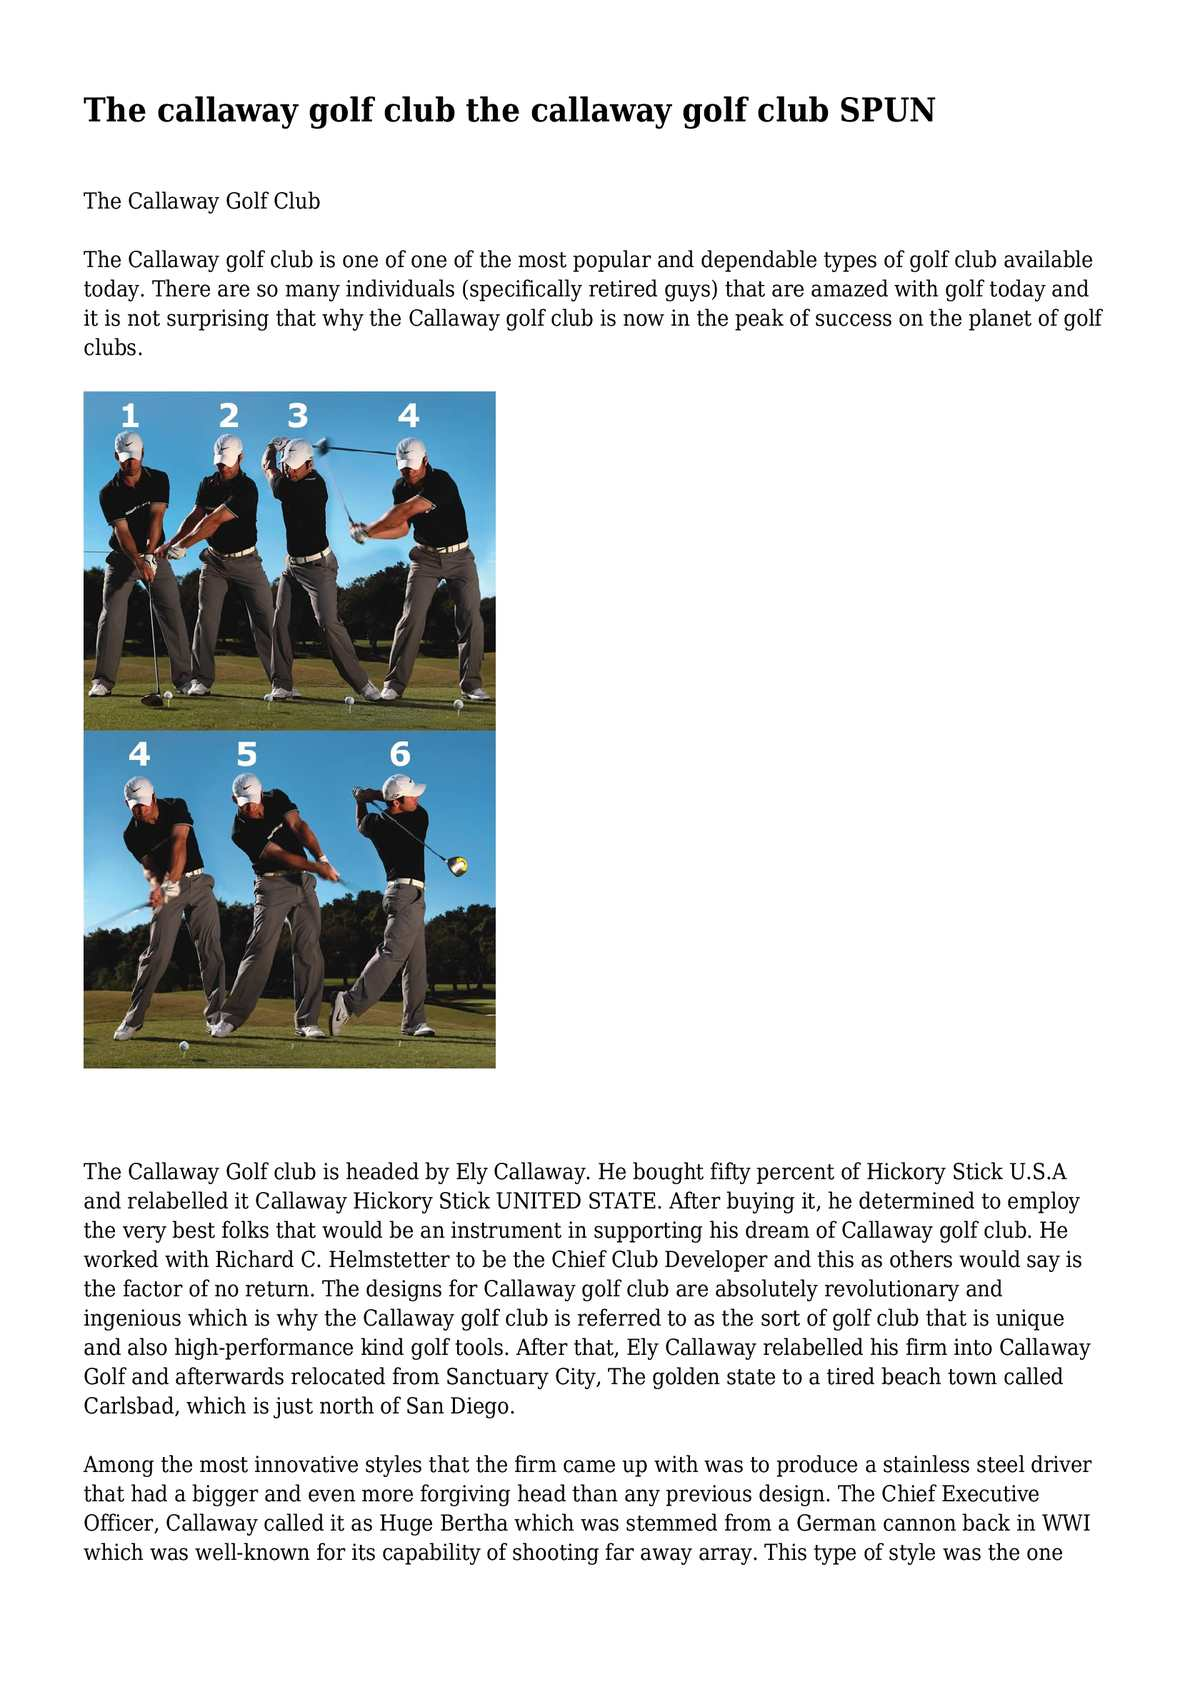 strategic analysis of the callaway golf company and determining the actual position of the firm in i Callaway golf company or an actual business assignment while not comprehensive and varying by industry and firm, some questions any strategic analysis.